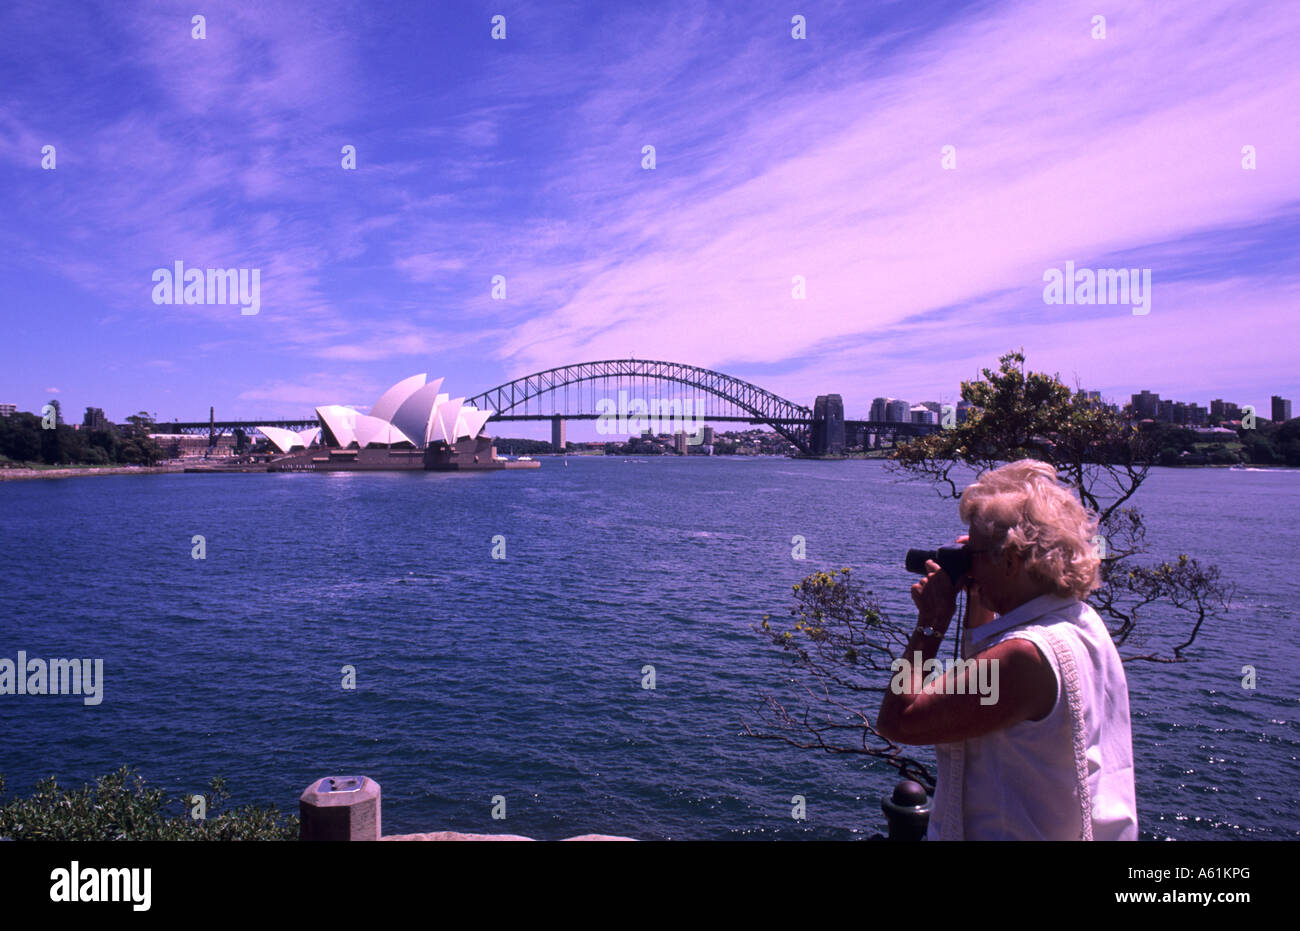 Woman tourist taking photograph of the famous Harbour Bridge and Opera House in Sydney Australia - Stock Image